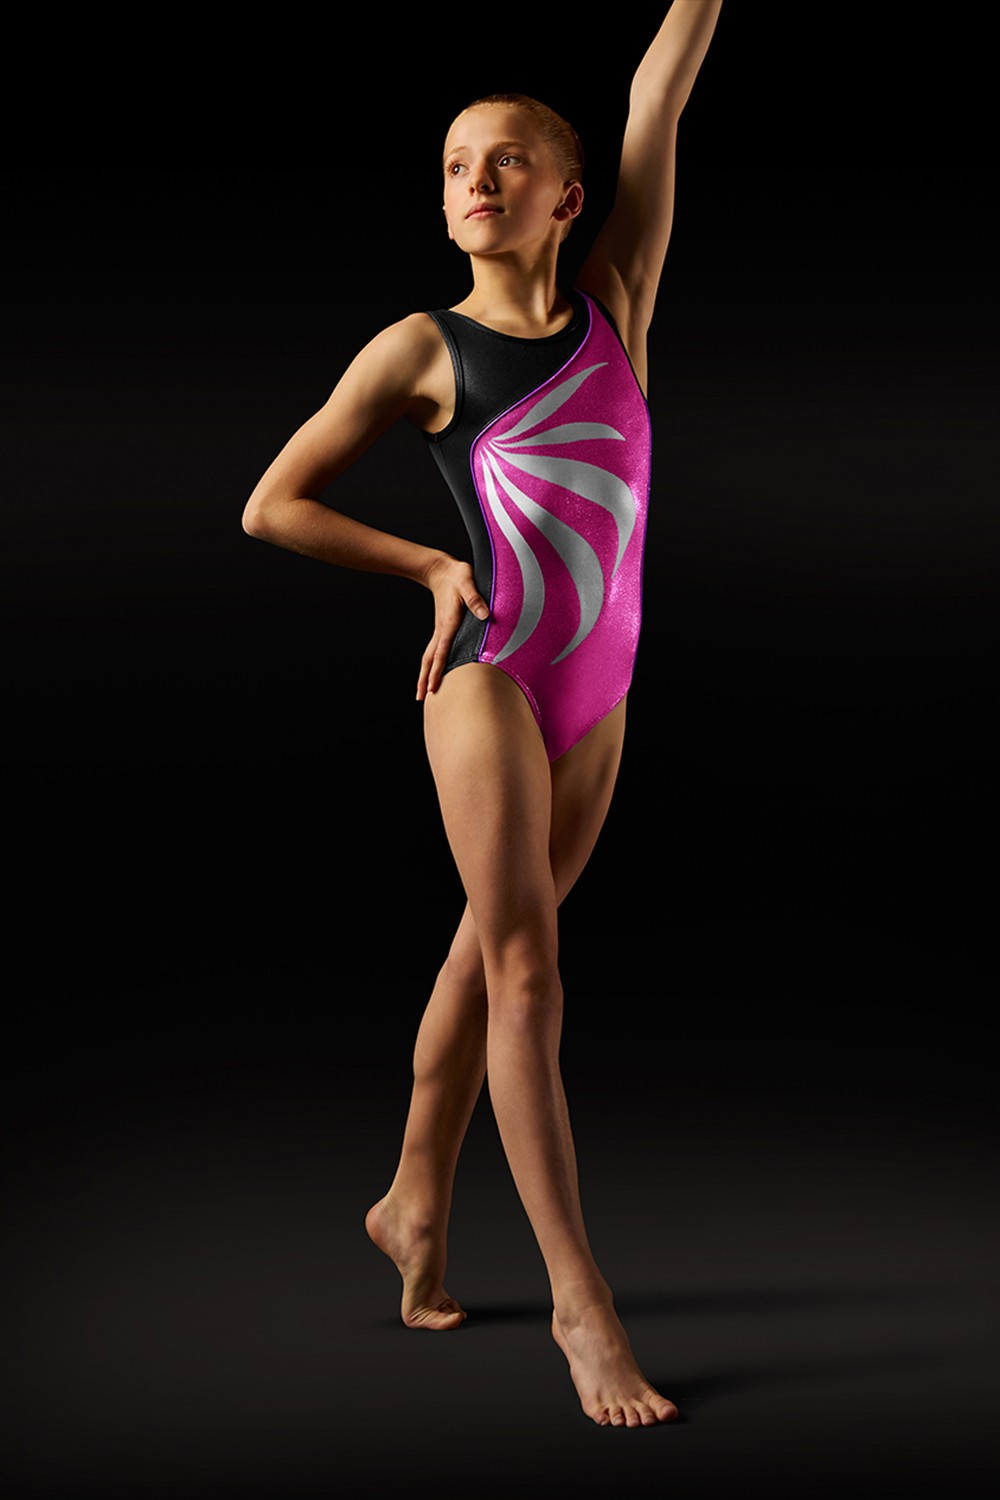 Body De Alças Grossas Com Motivo De Flamas Frontal  Women's Gymnastics Leotards